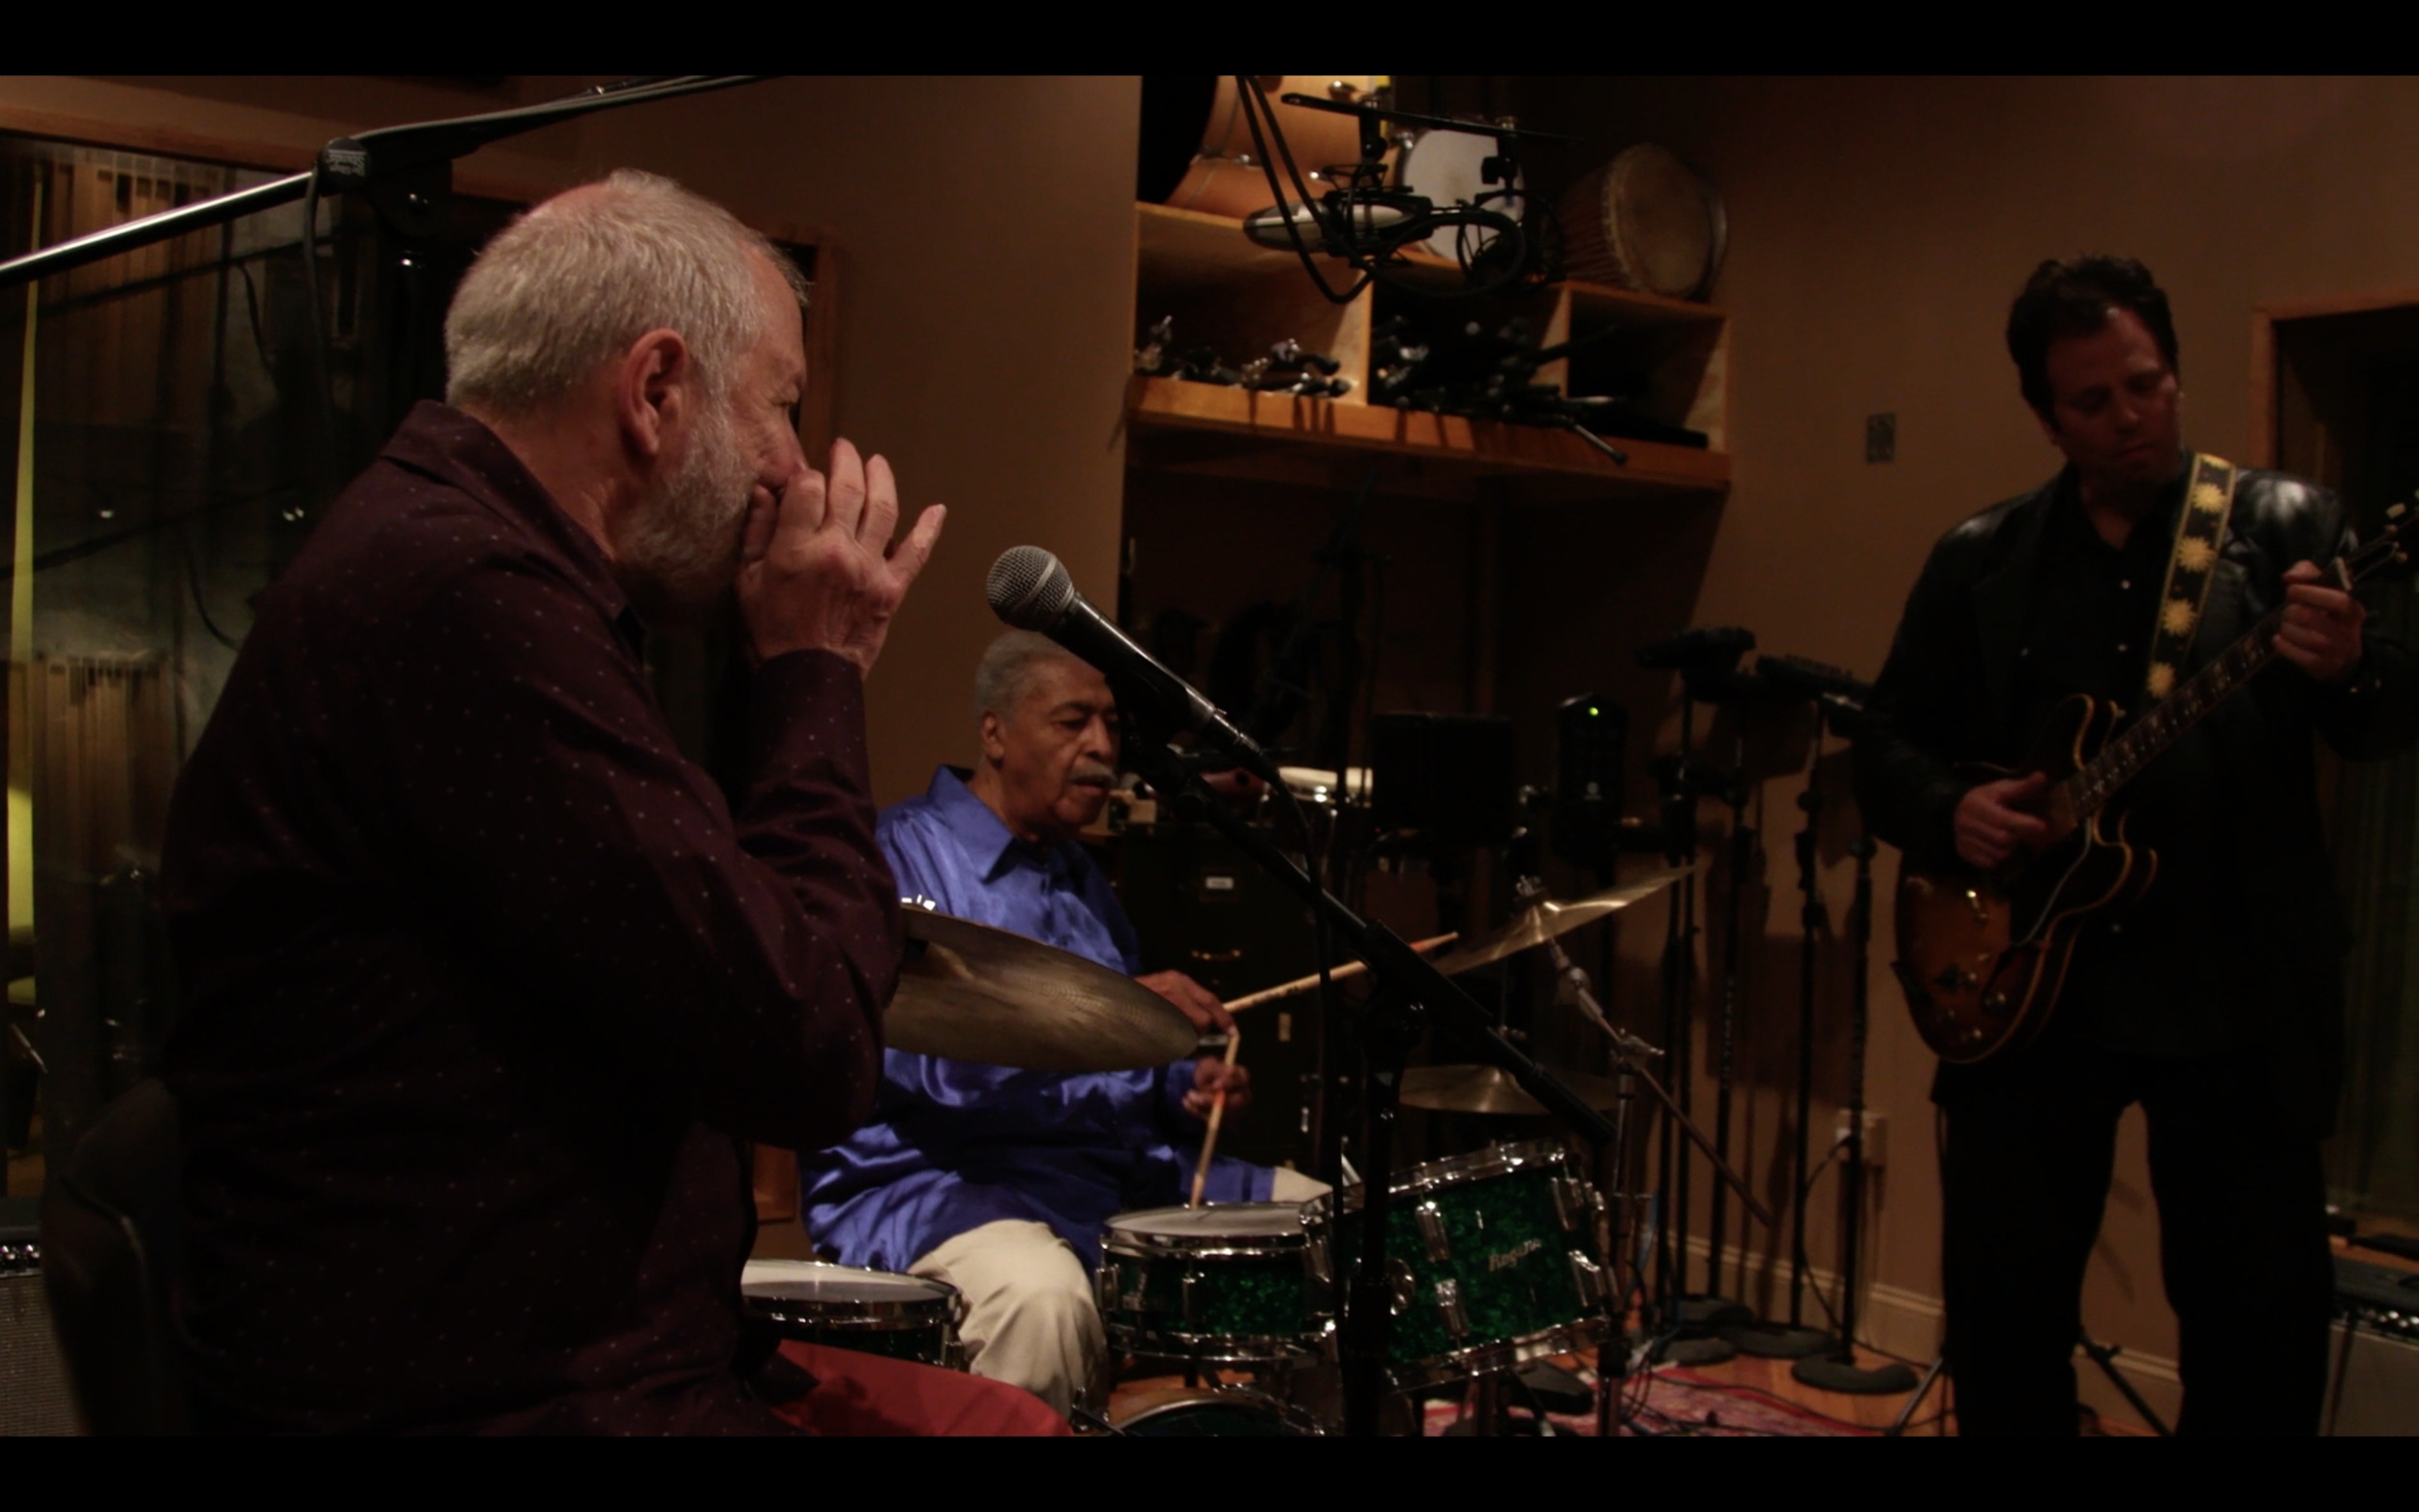 Podcast Video: Sam Lay and Corky Siegel join Dave for an interview and jam session in the SPACE studios. -